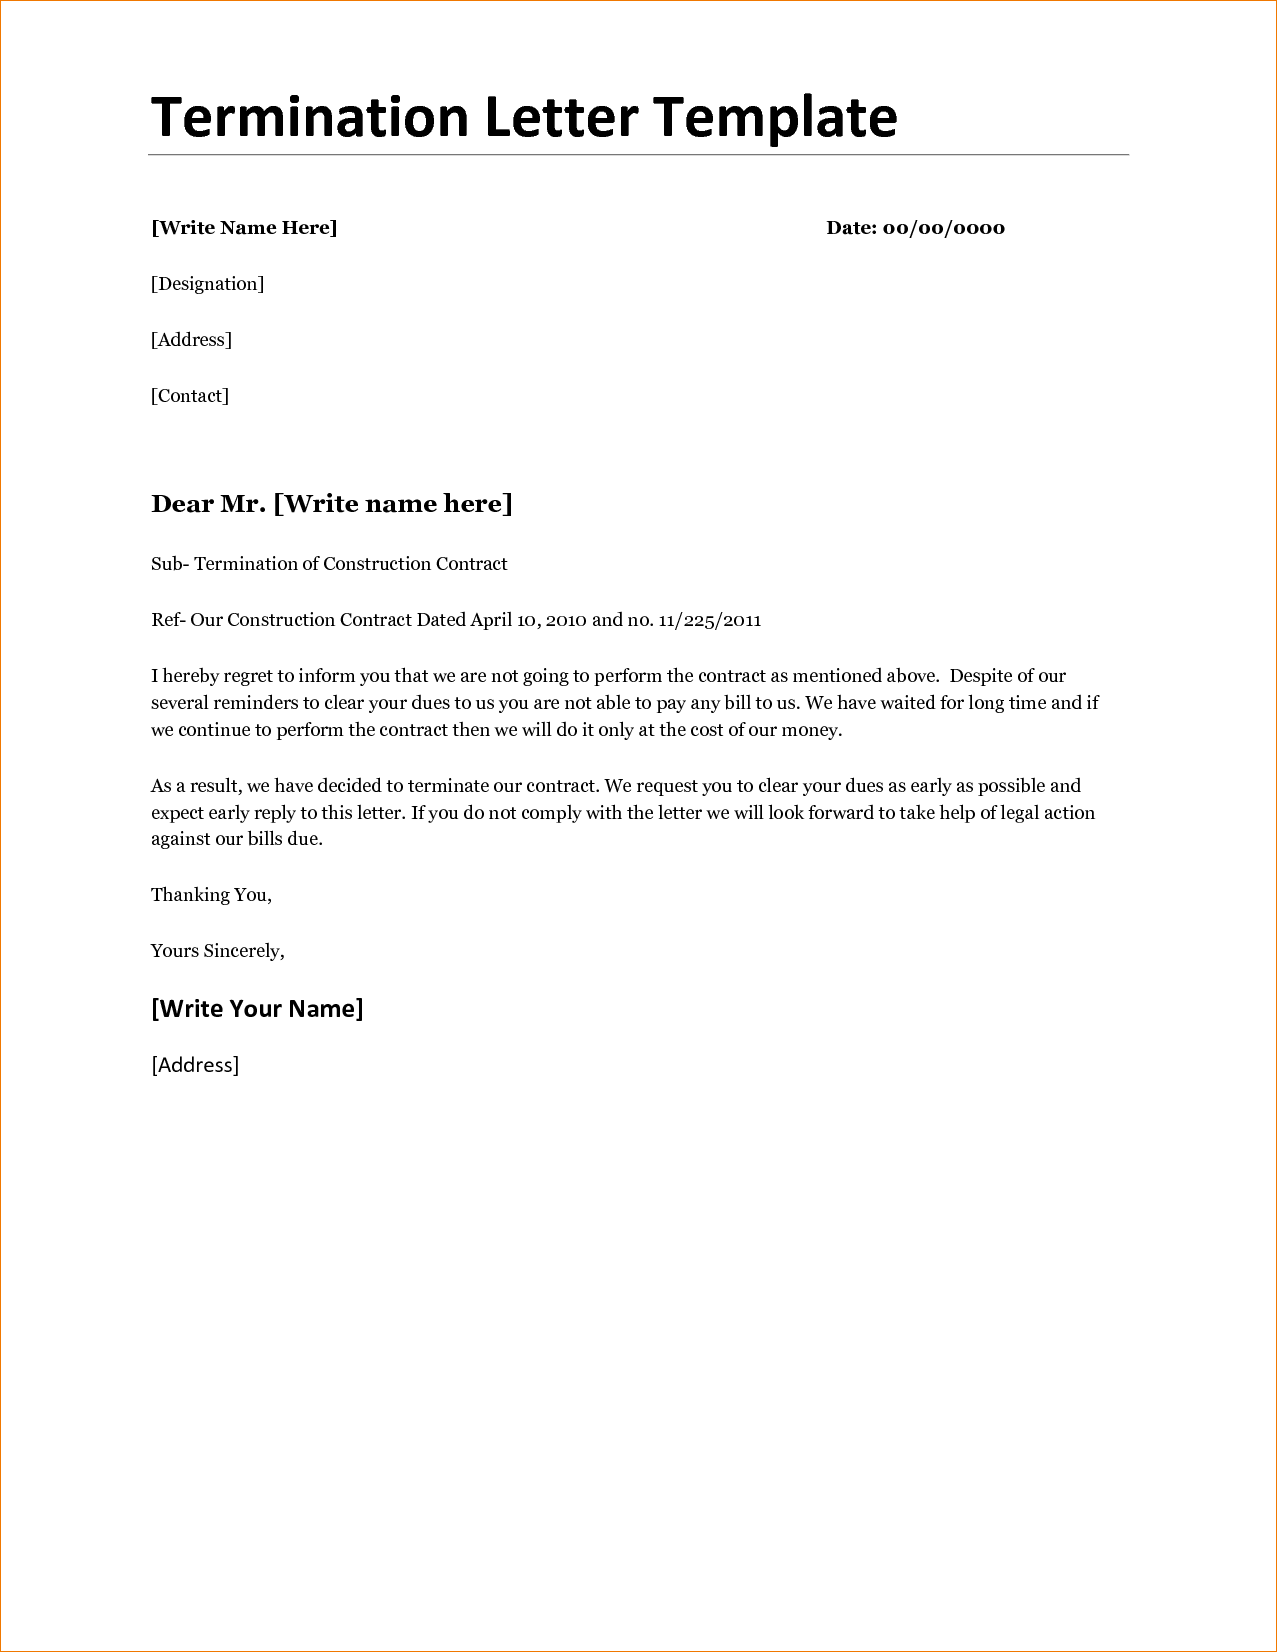 contract agreement template templateg letter cancellation business